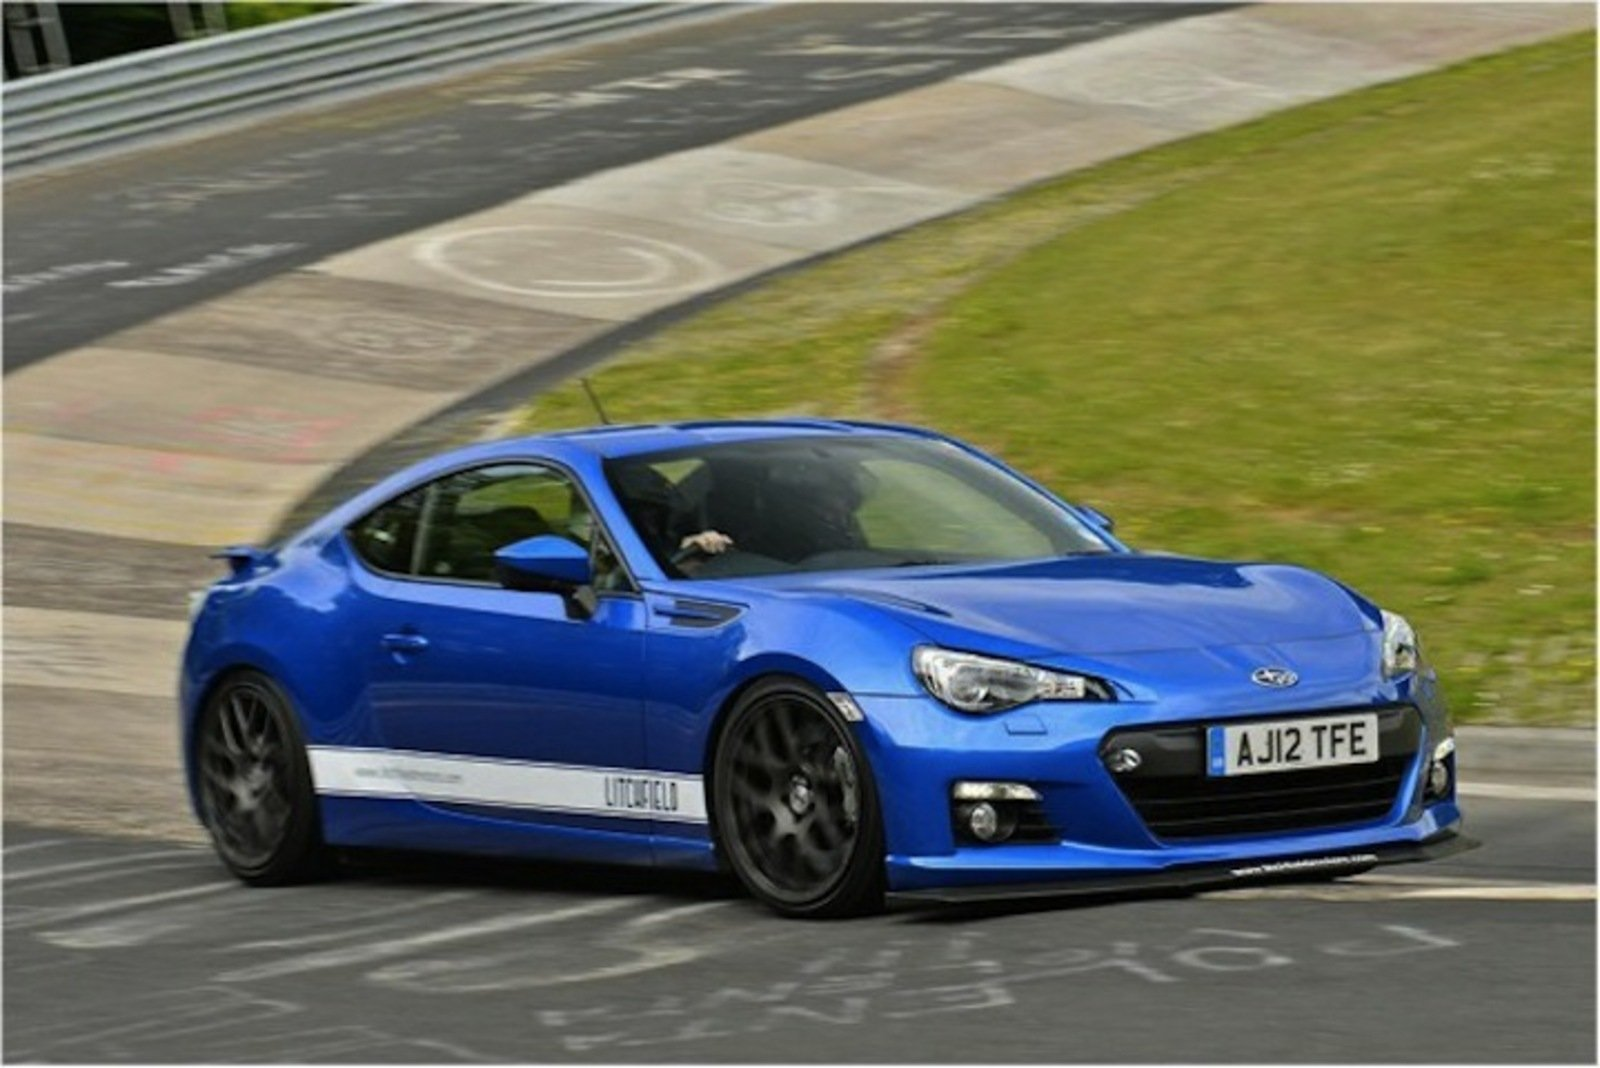 2013 Subaru BRZ Spec-S By Lichtfield Review - Top Speed